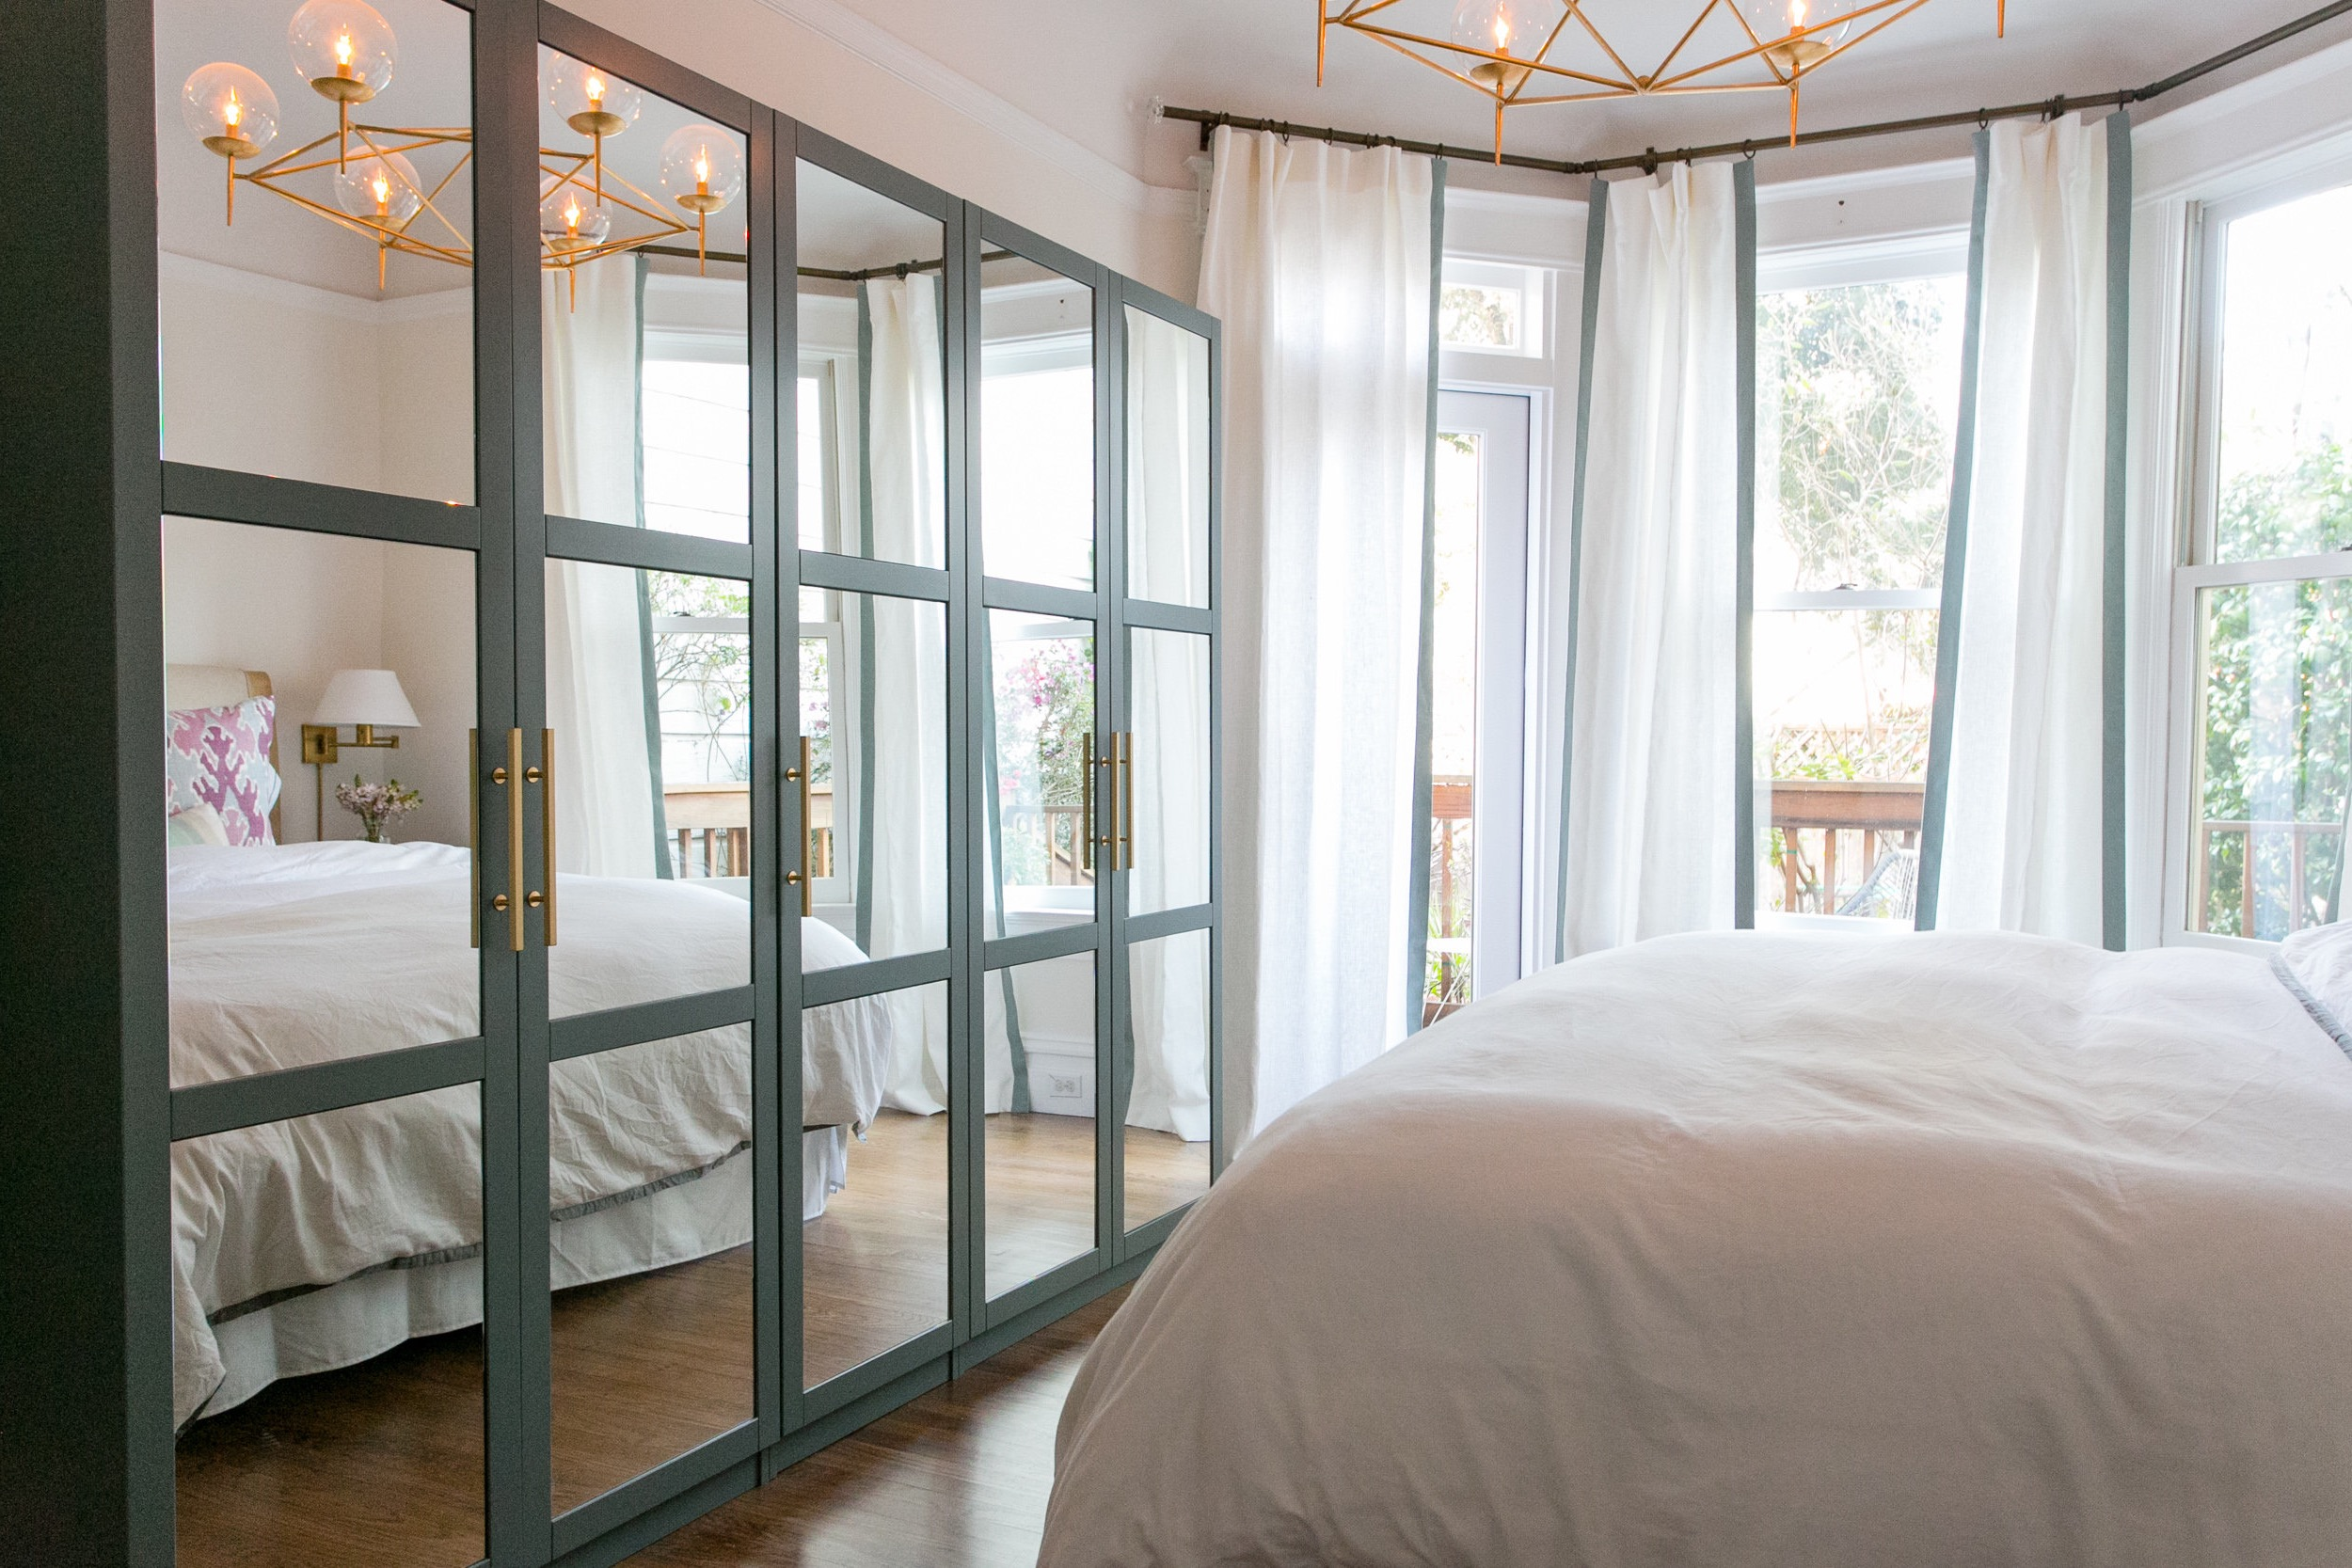 Contemporary Mirrored Bedroom Closet Doors (Image 2 of 20)